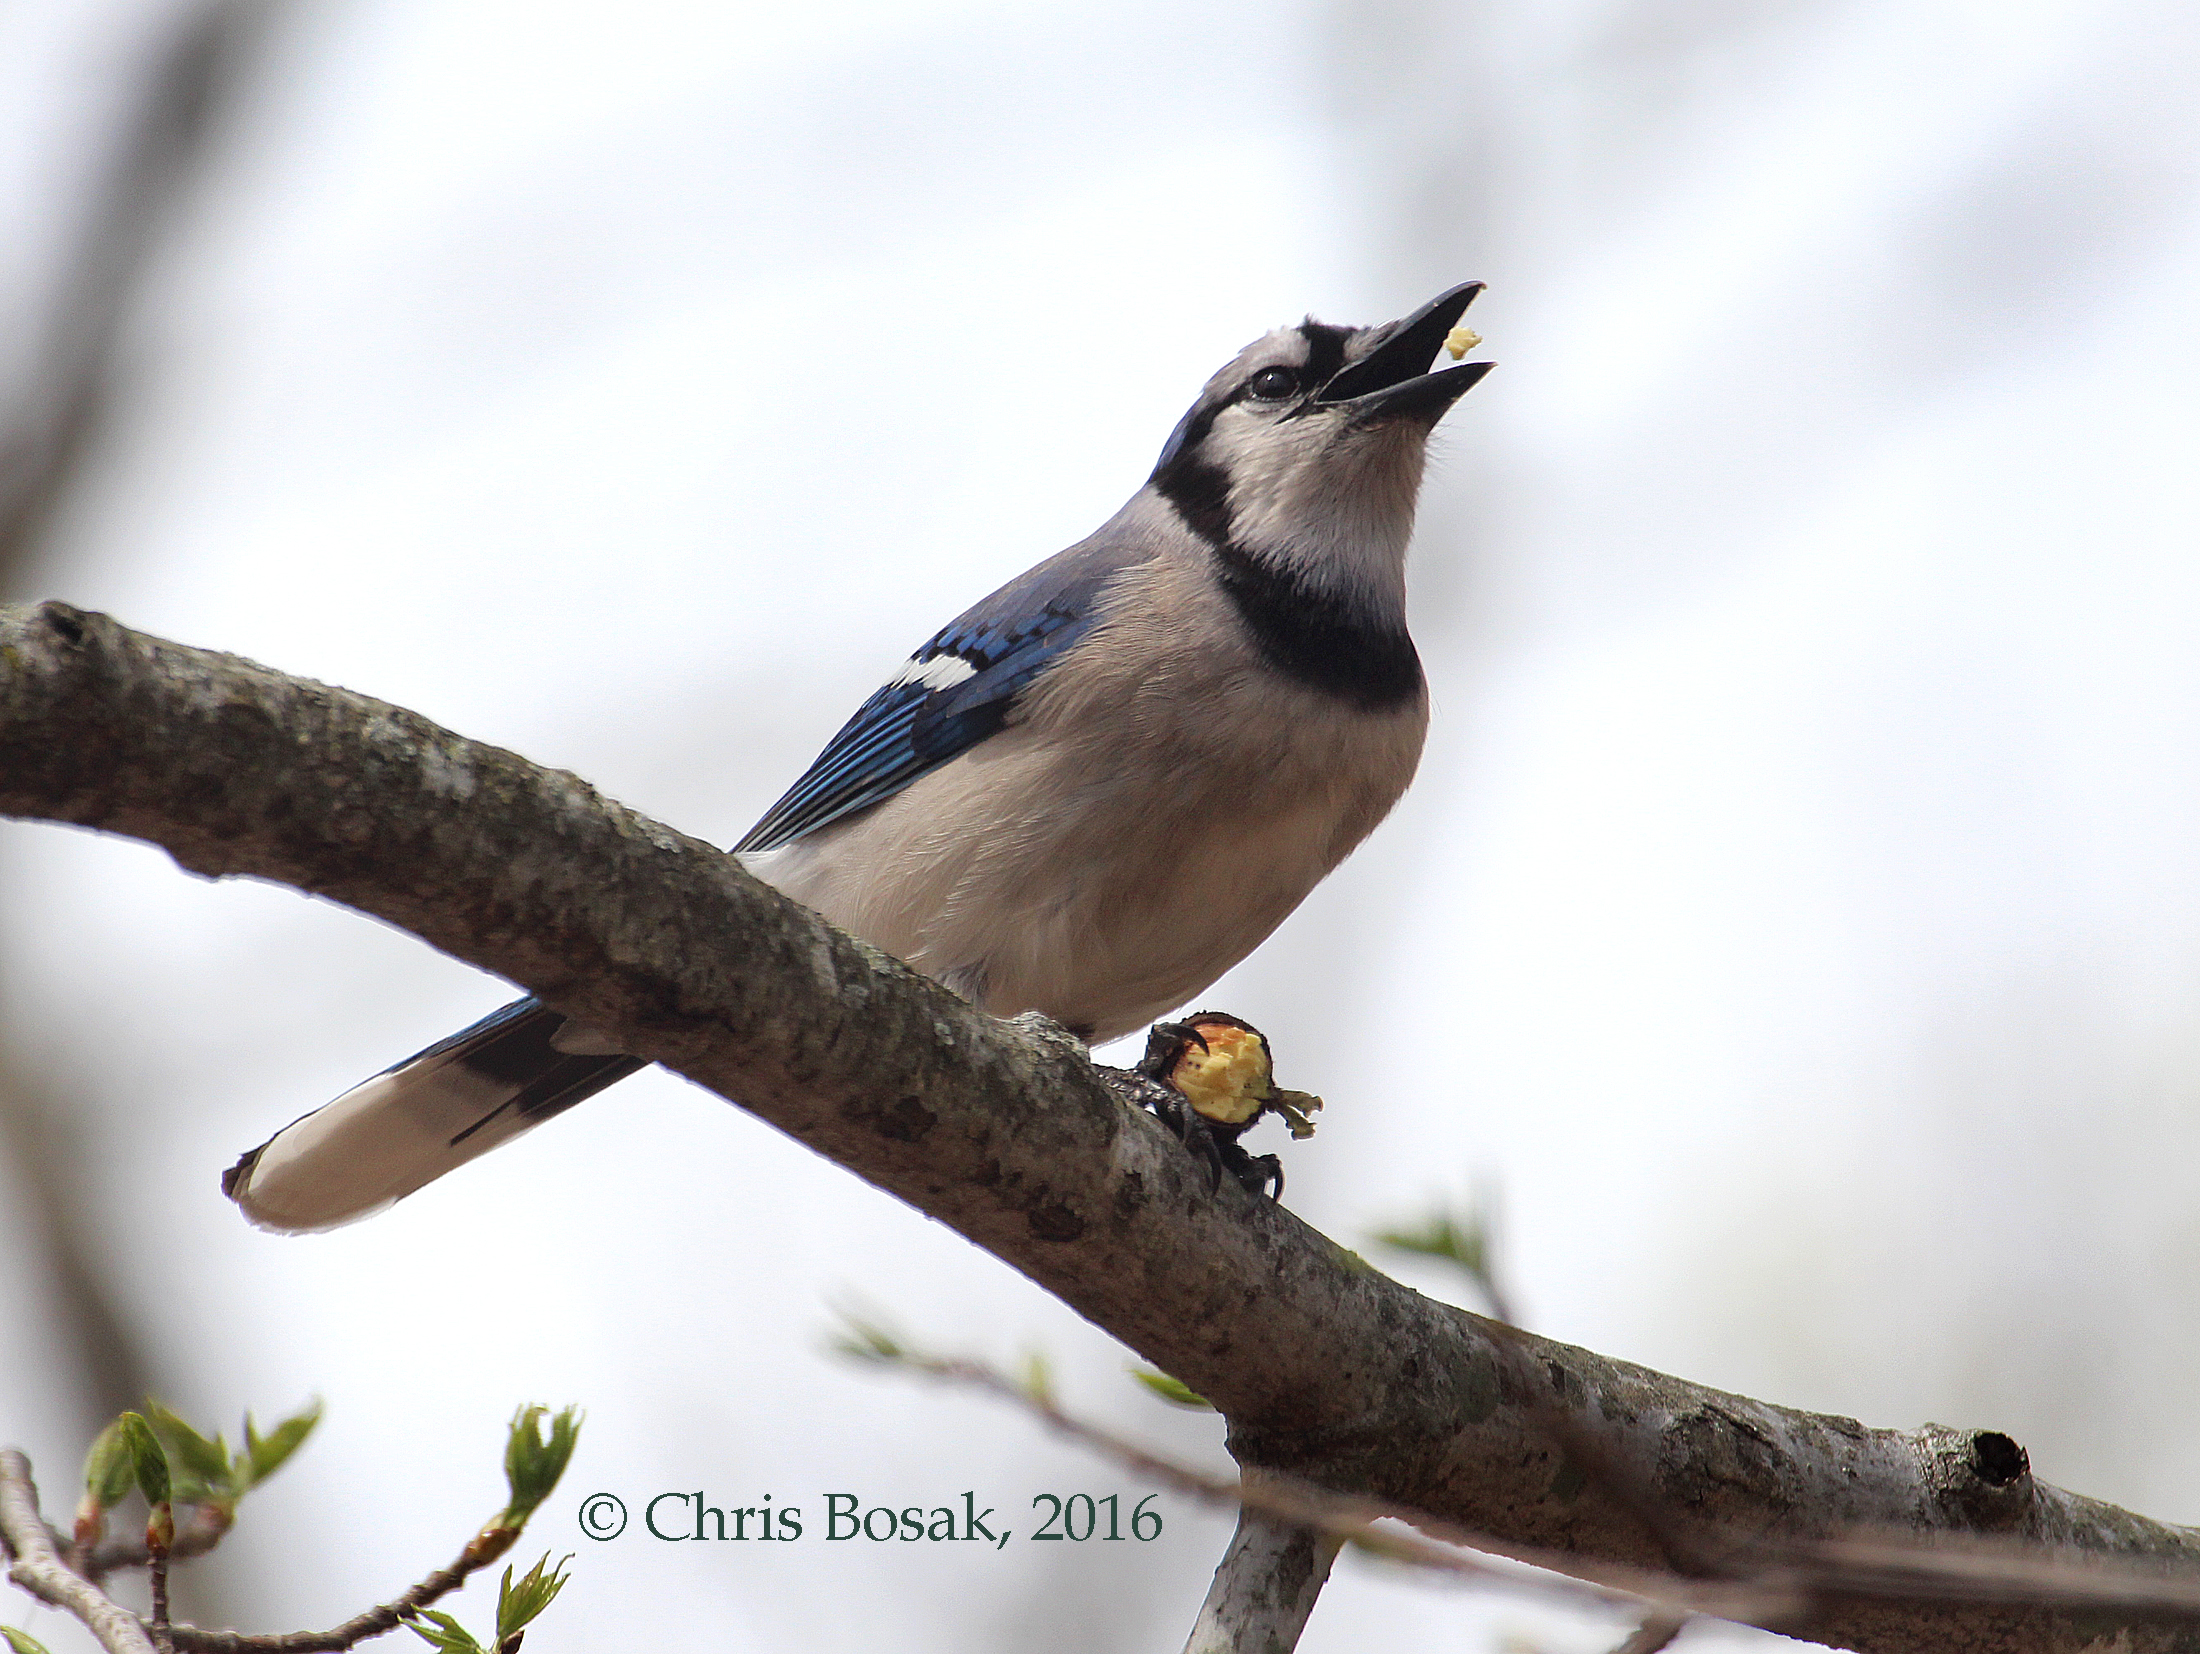 Photo by Chris Bosak A Blue Jay eats an acorn at Selleck's Woods in Darien, Conn., April 2016.